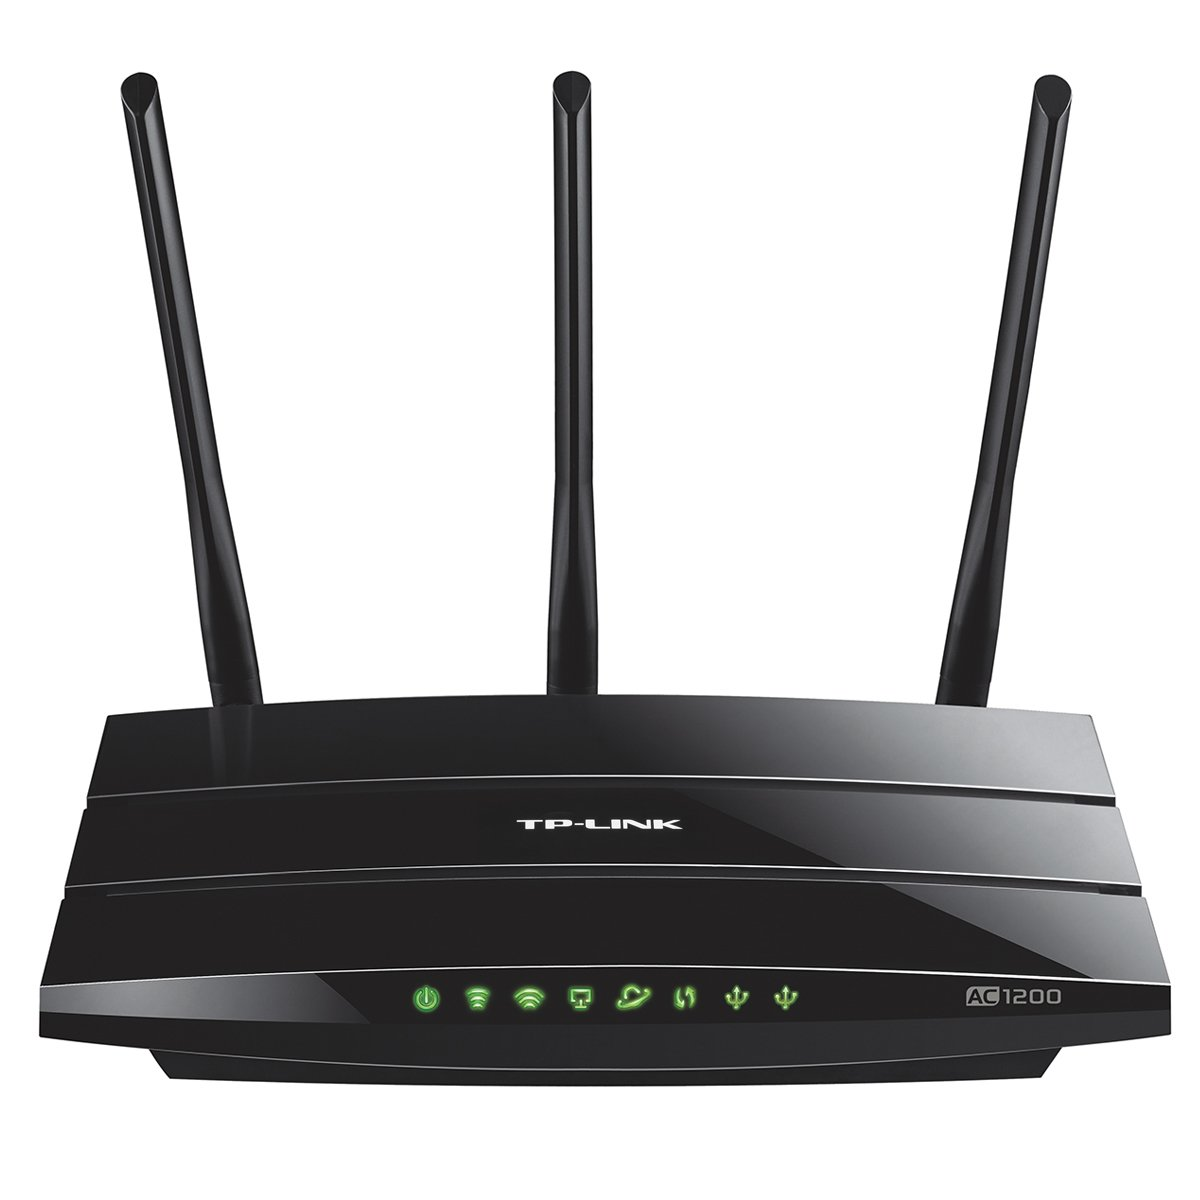 TP-Link Archer AC1200 Smart WiFi Router – Dual-band Gigabit (C1200)